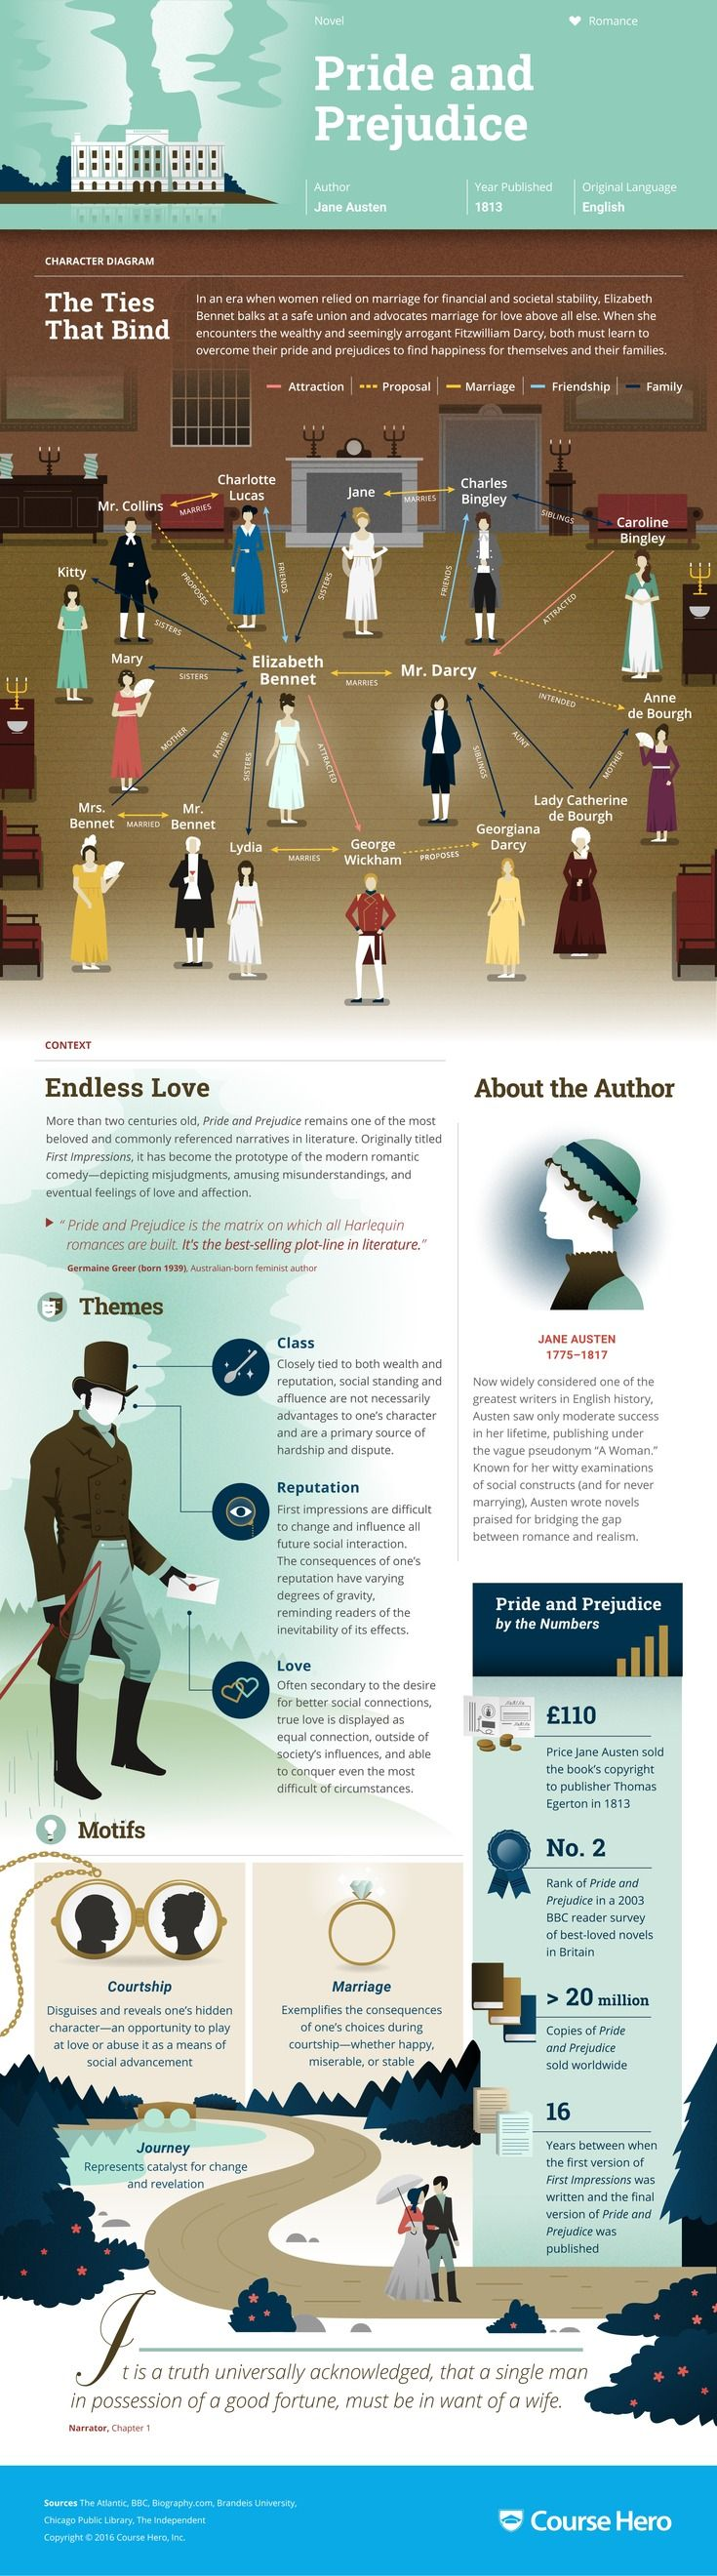 this pride and prejudice infographic from course hero is as learn all about pride and prejudice ask questions and get the answers you need